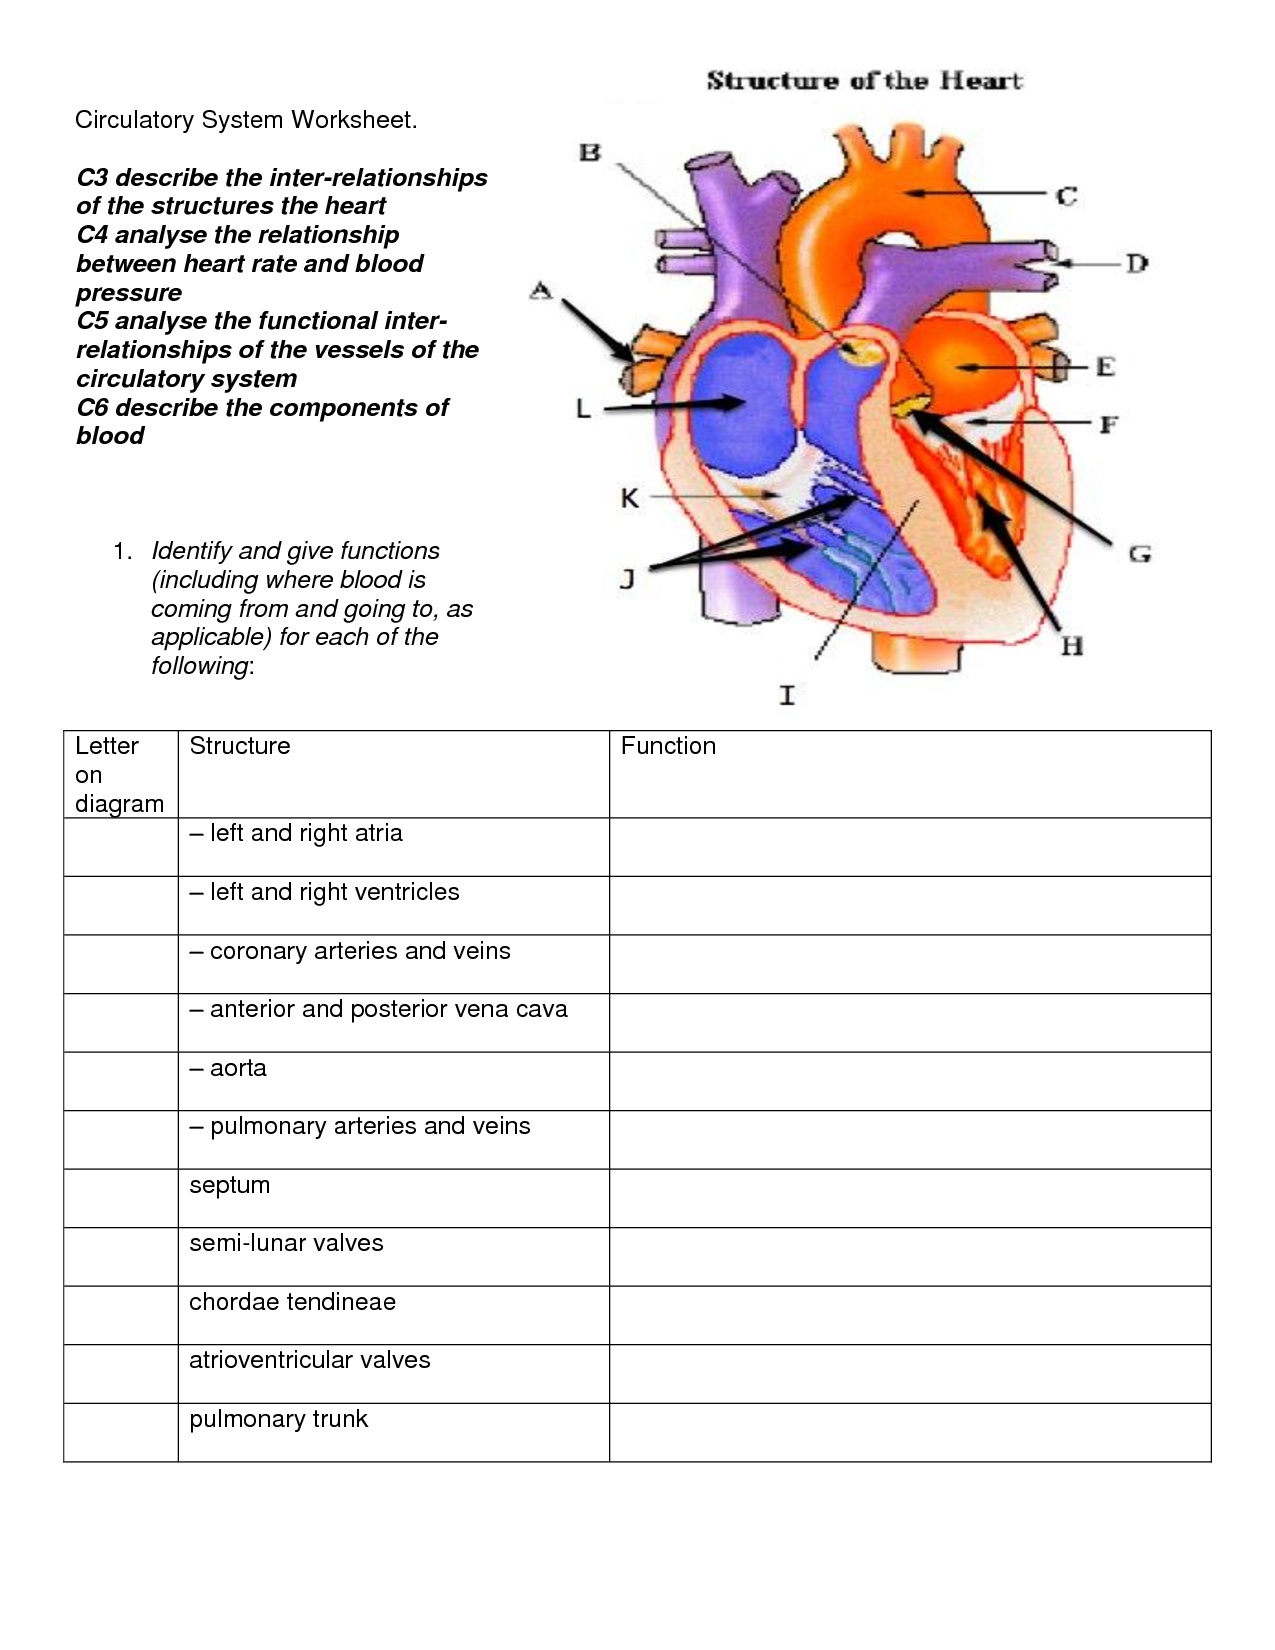 Printables Circulatory System Diagram Worksheet circulatory system diagram worksheet 2 anatomy for kids humananatomybody info